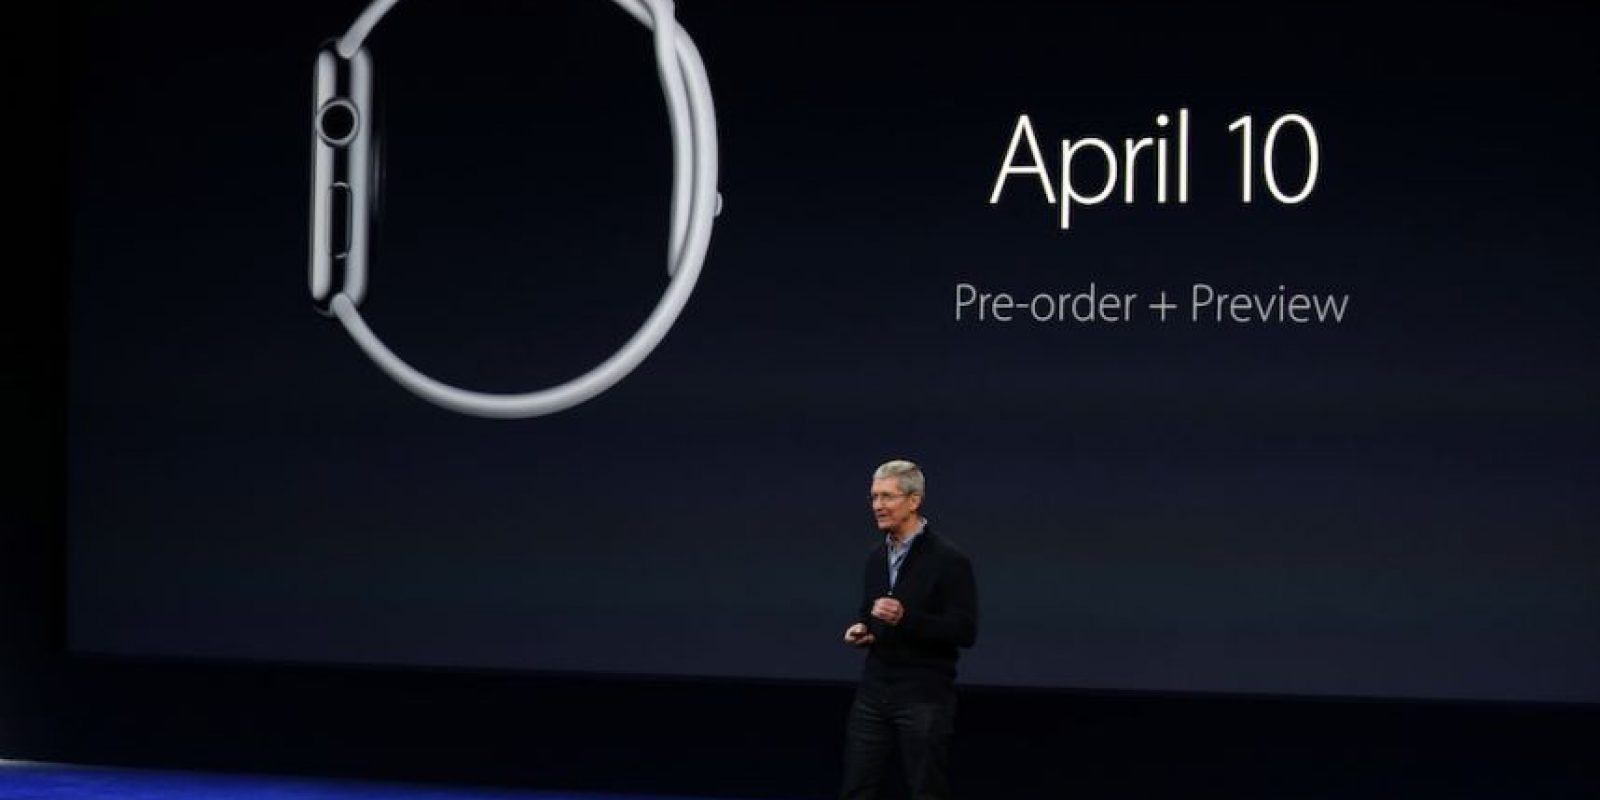 Apple Watch comenzará a venderse el próximo 10 de abril. Foto: Getty Images